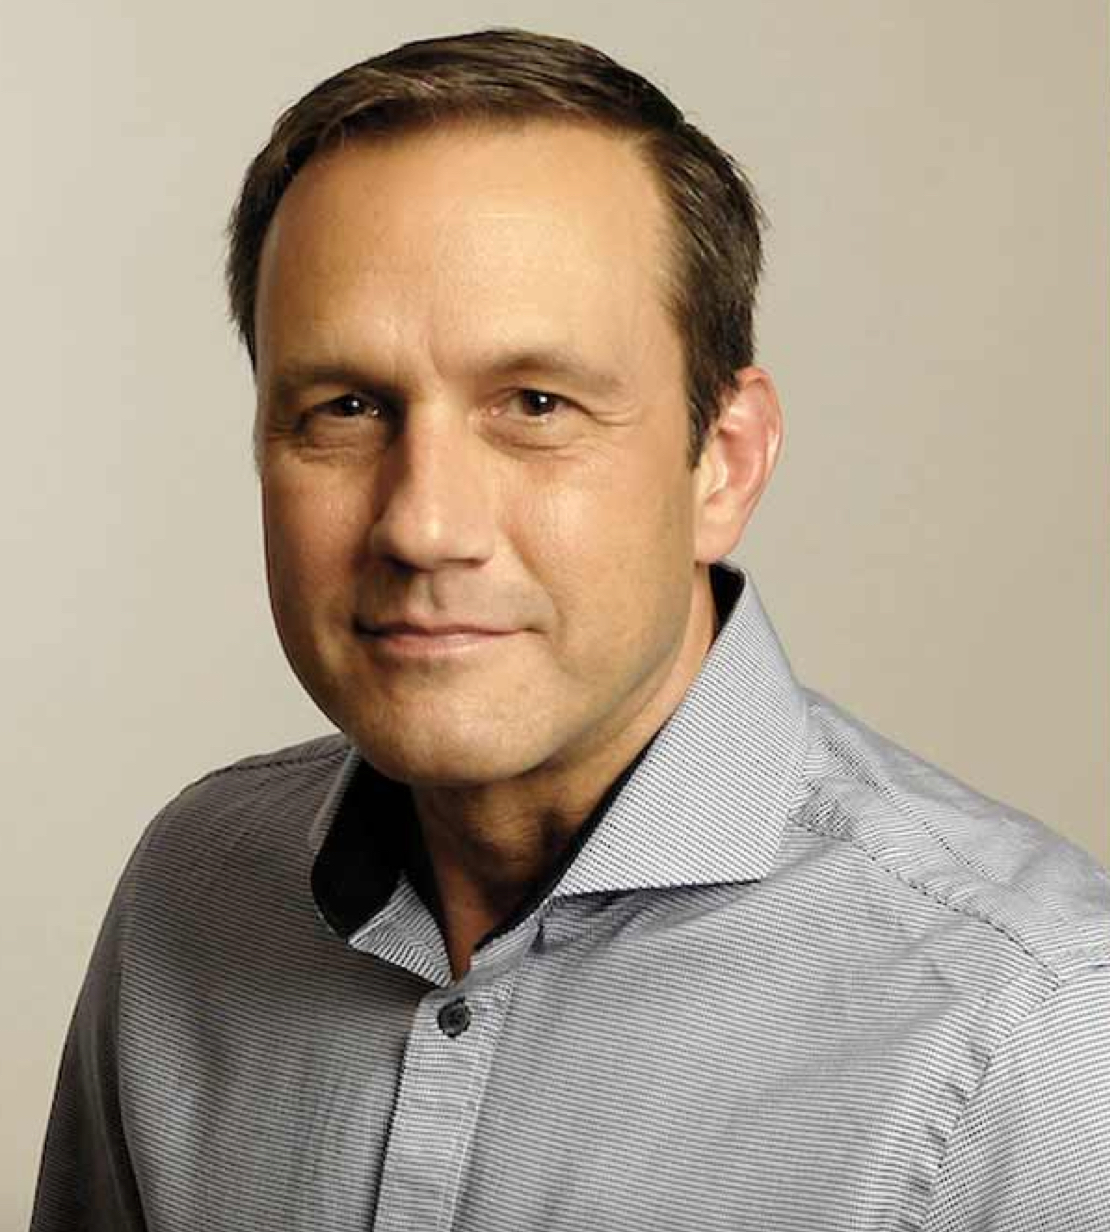 Paul Nehlen, Candidate for Wisconsin's First Congressional District (Photo Credit: PaulNehlen.com)